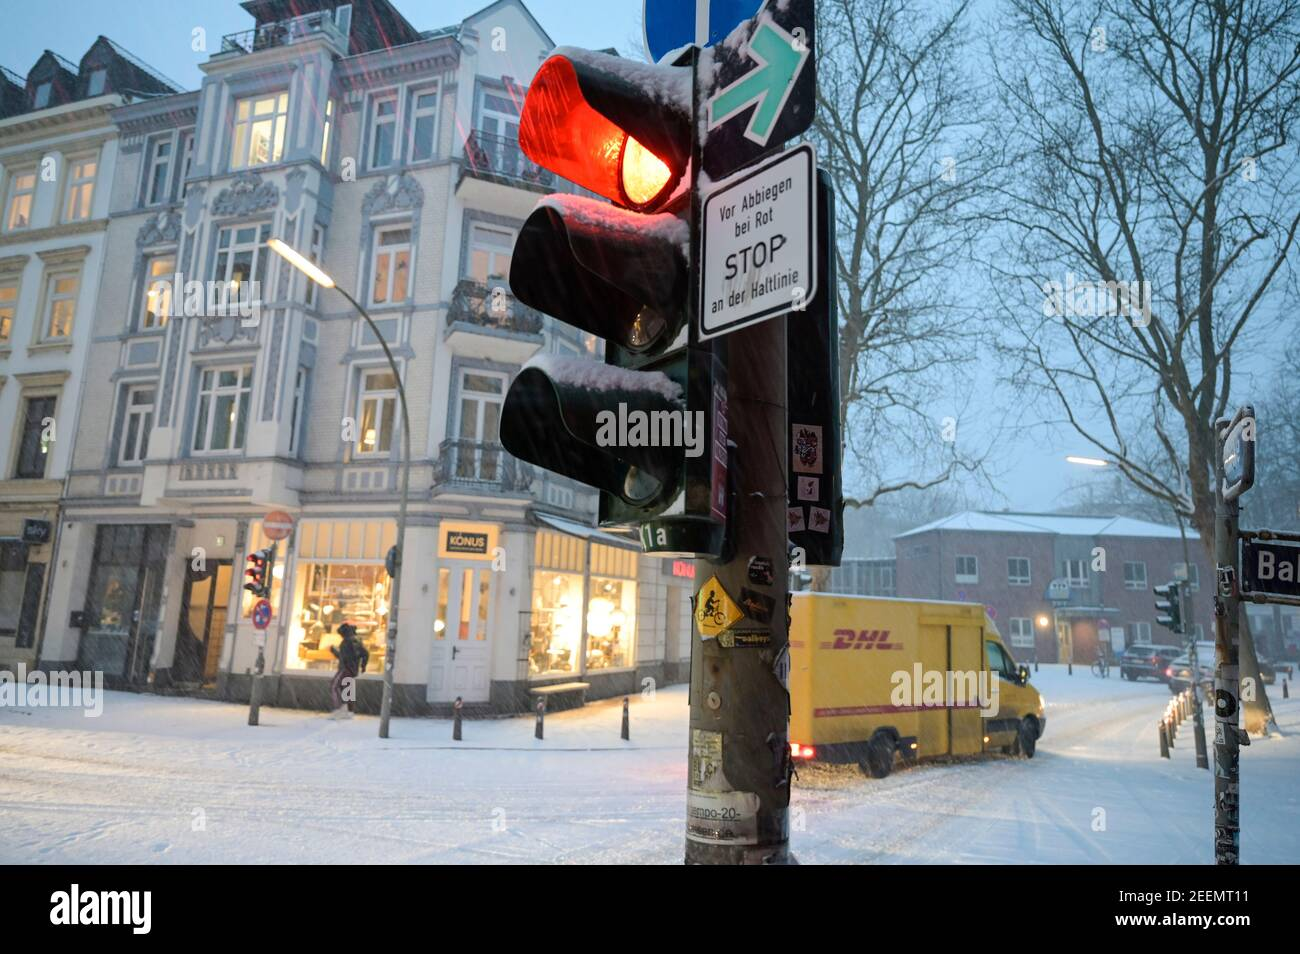 GERMANY, Hamburg, winter, snow, red traffic light, yellow DHL vehicle, parcel delivery service Stock Photo